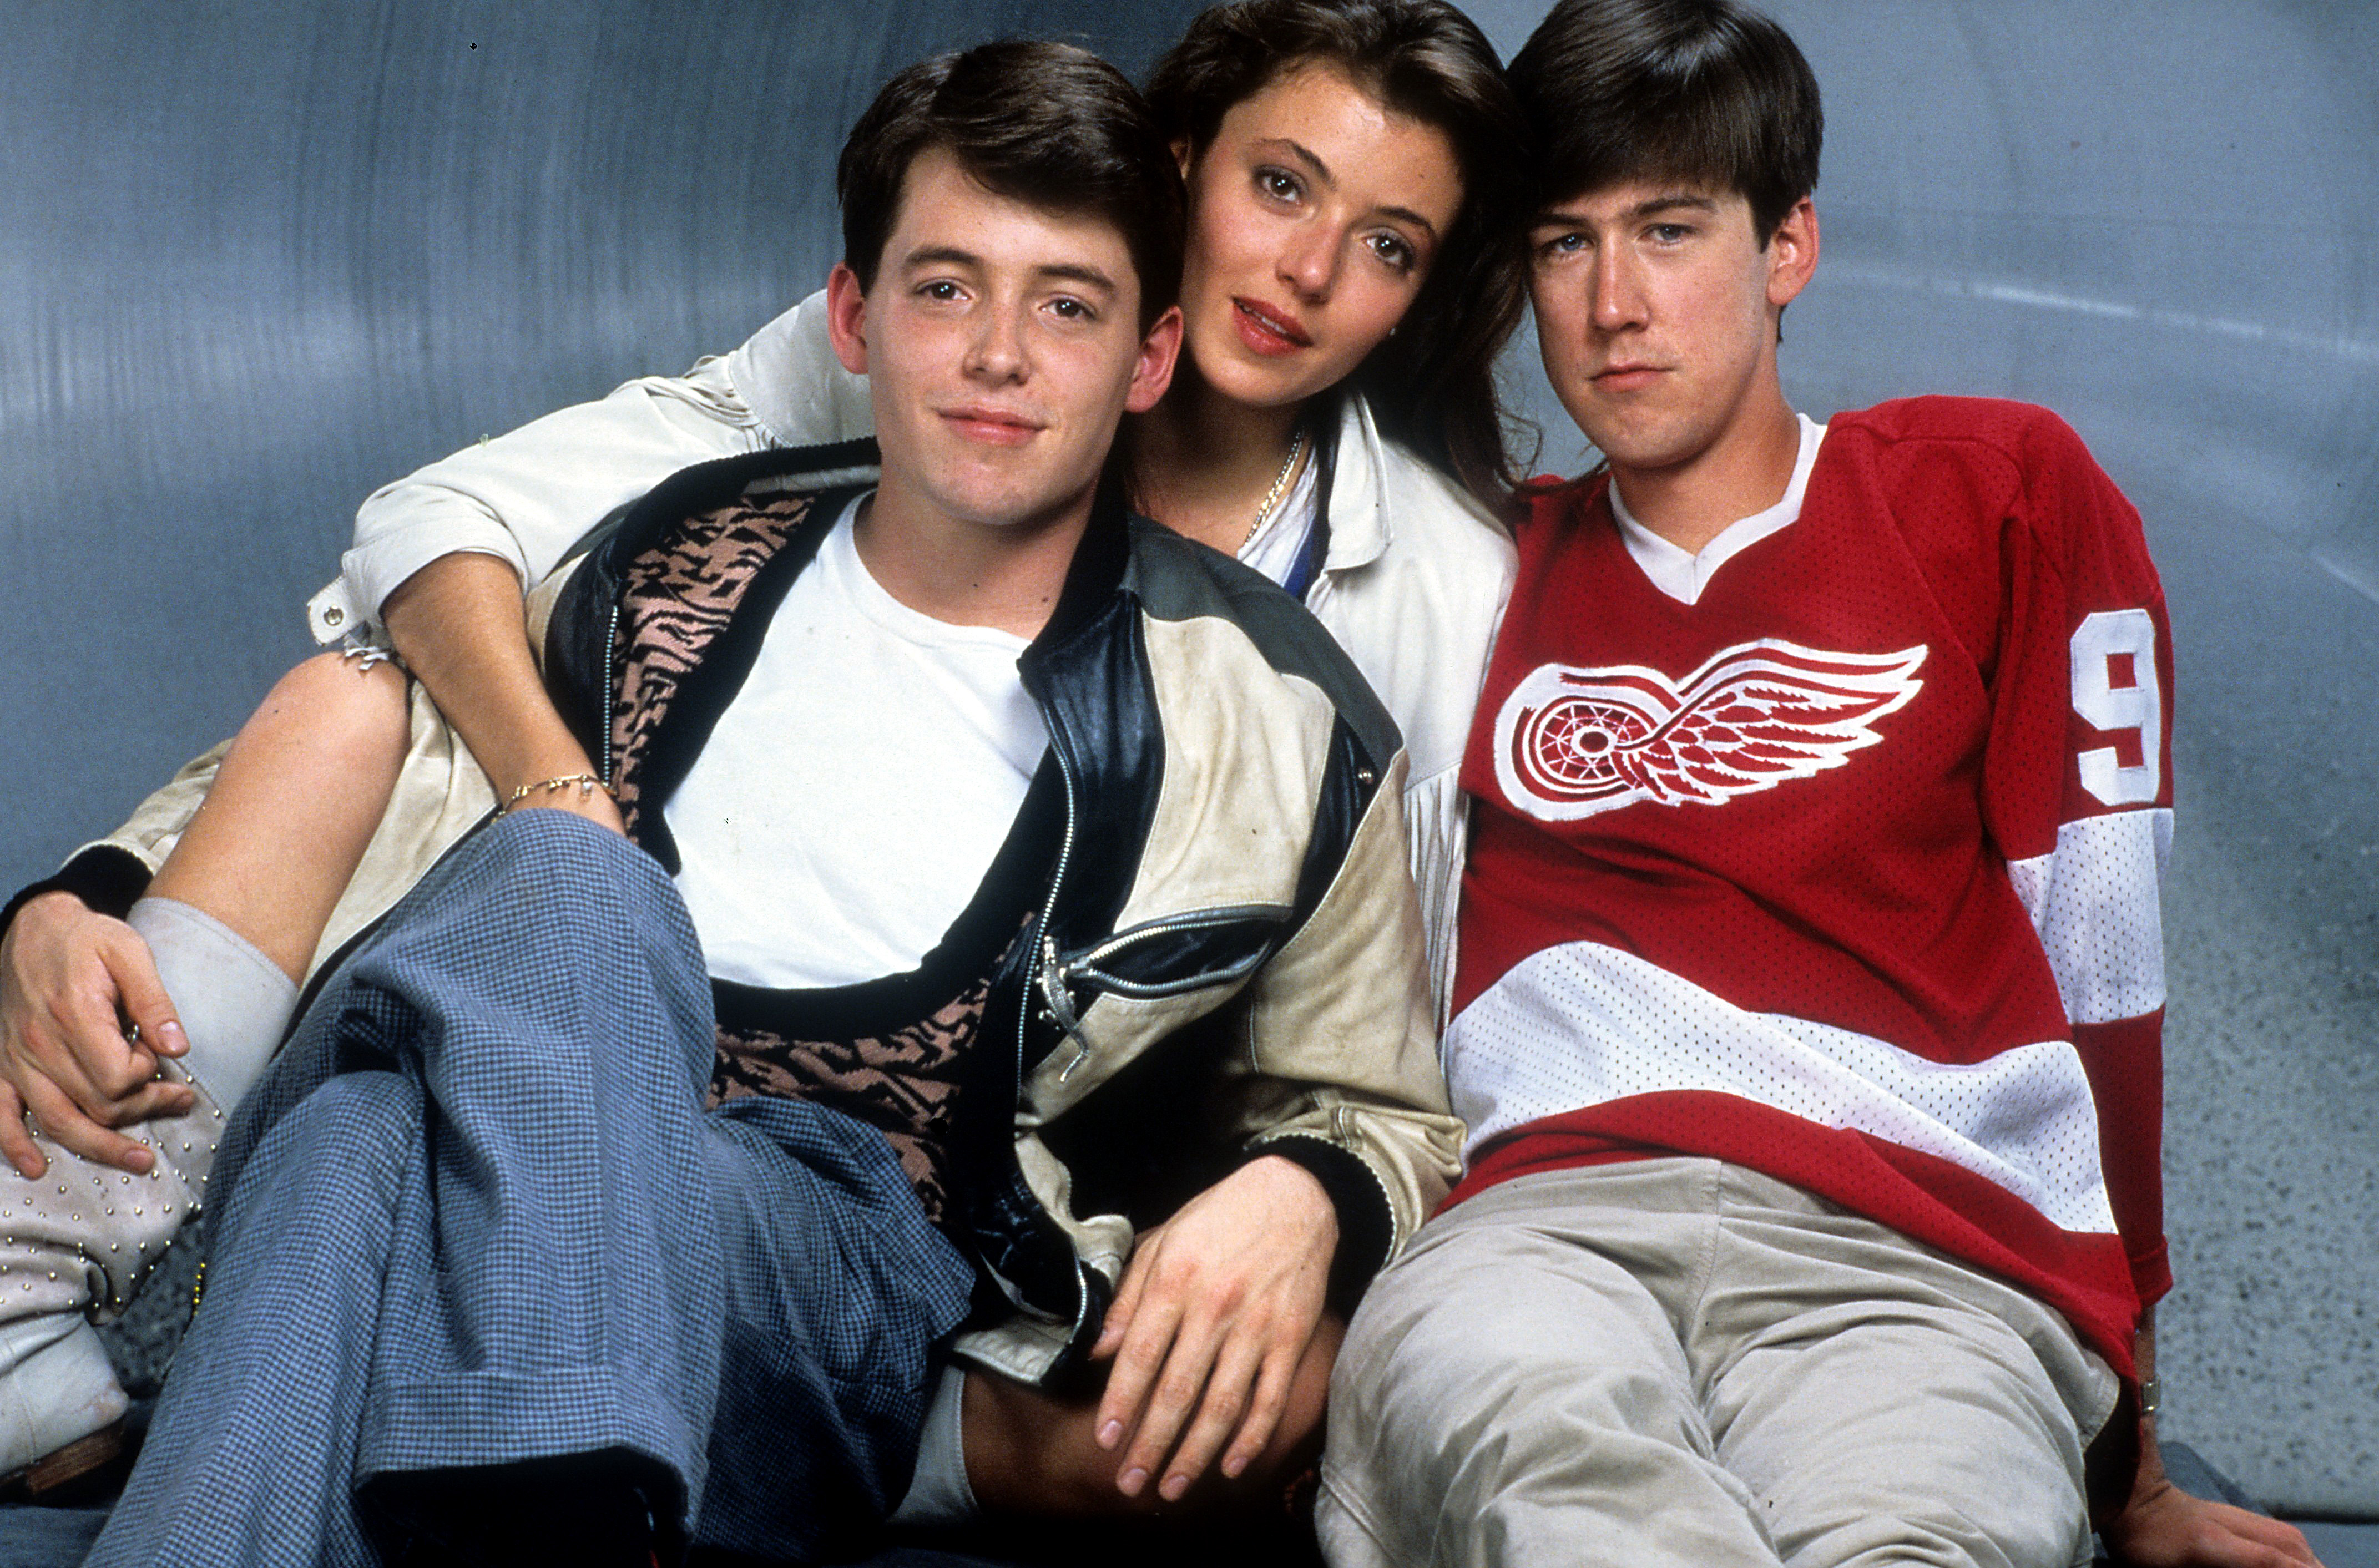 Matthew Broderick, Mia Sara and Alan Ruck publicity portrait for the film 'Ferris Bueller's Day Off', 1986